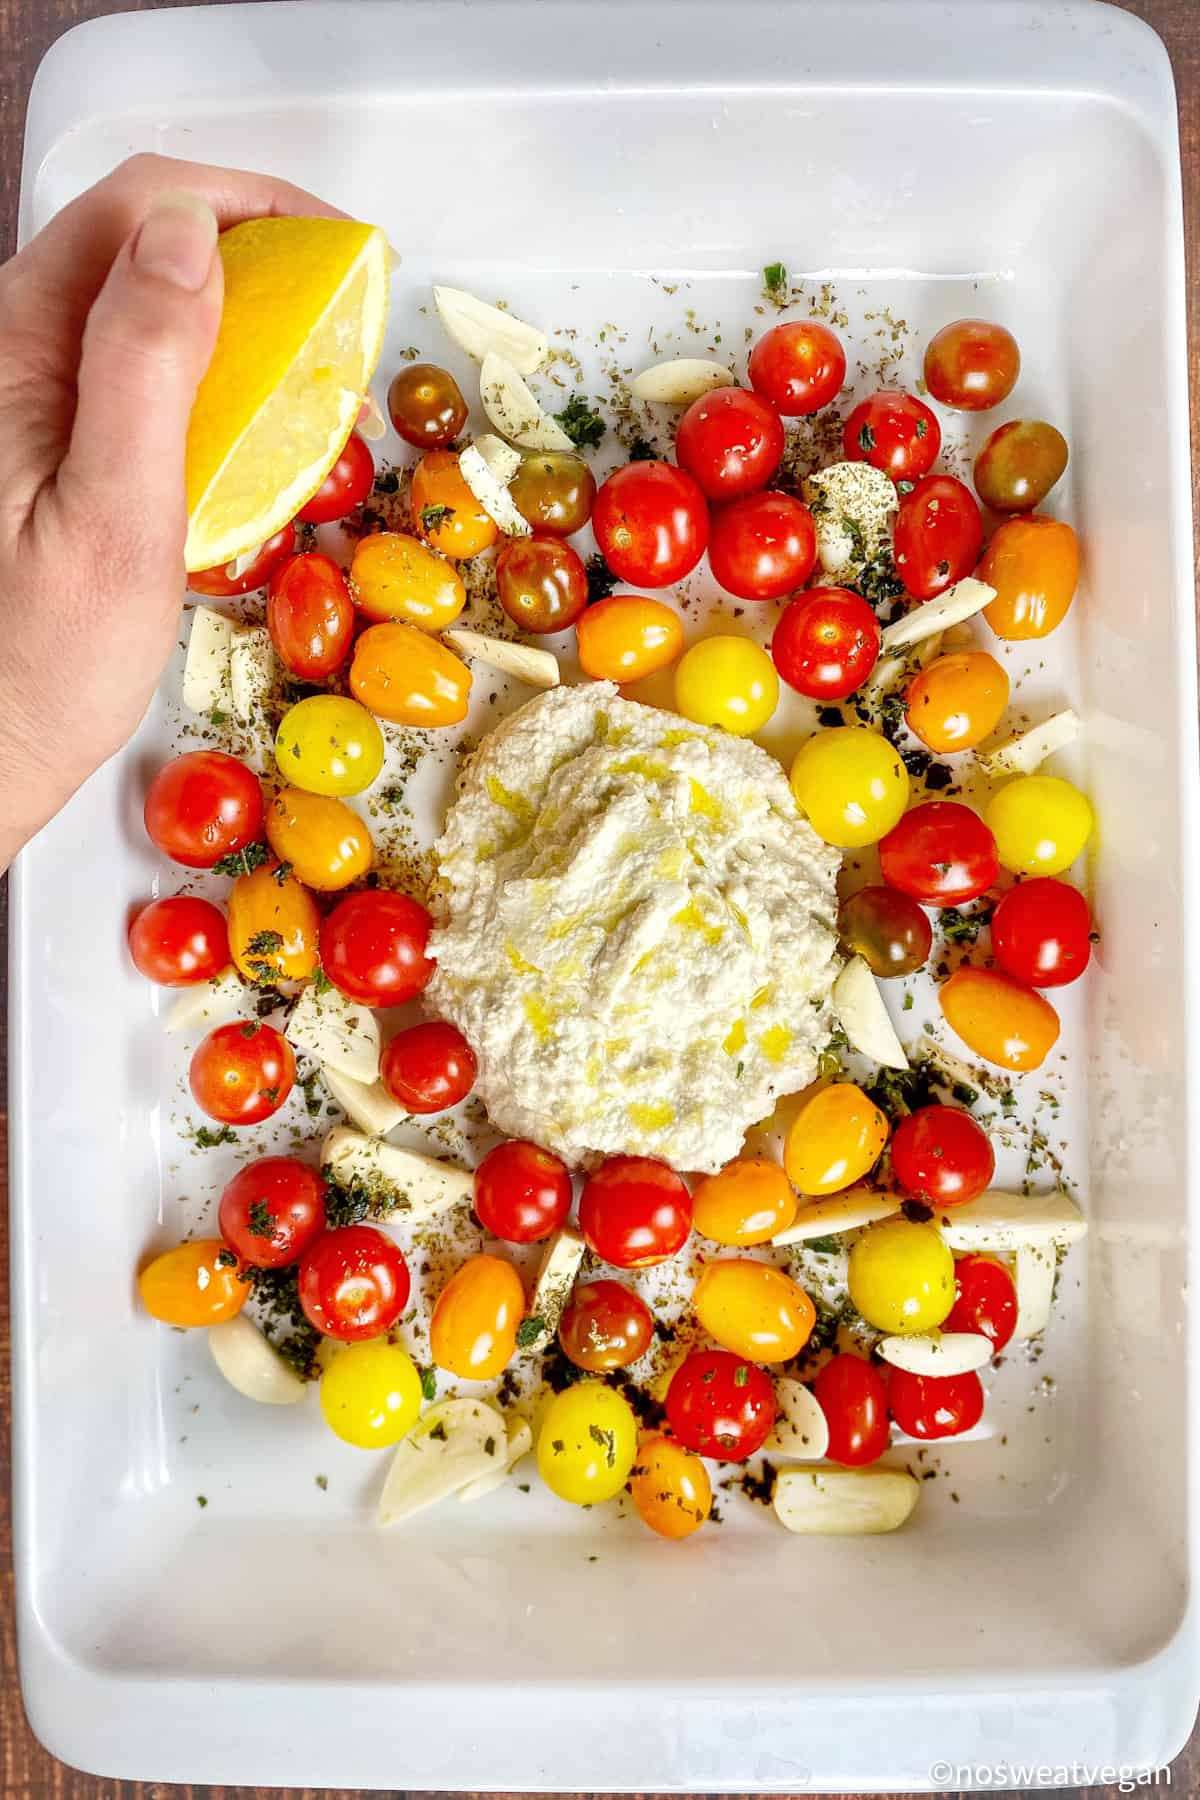 Almond ricotta, tomatoes, garlic, and seasoning in a baking dish.